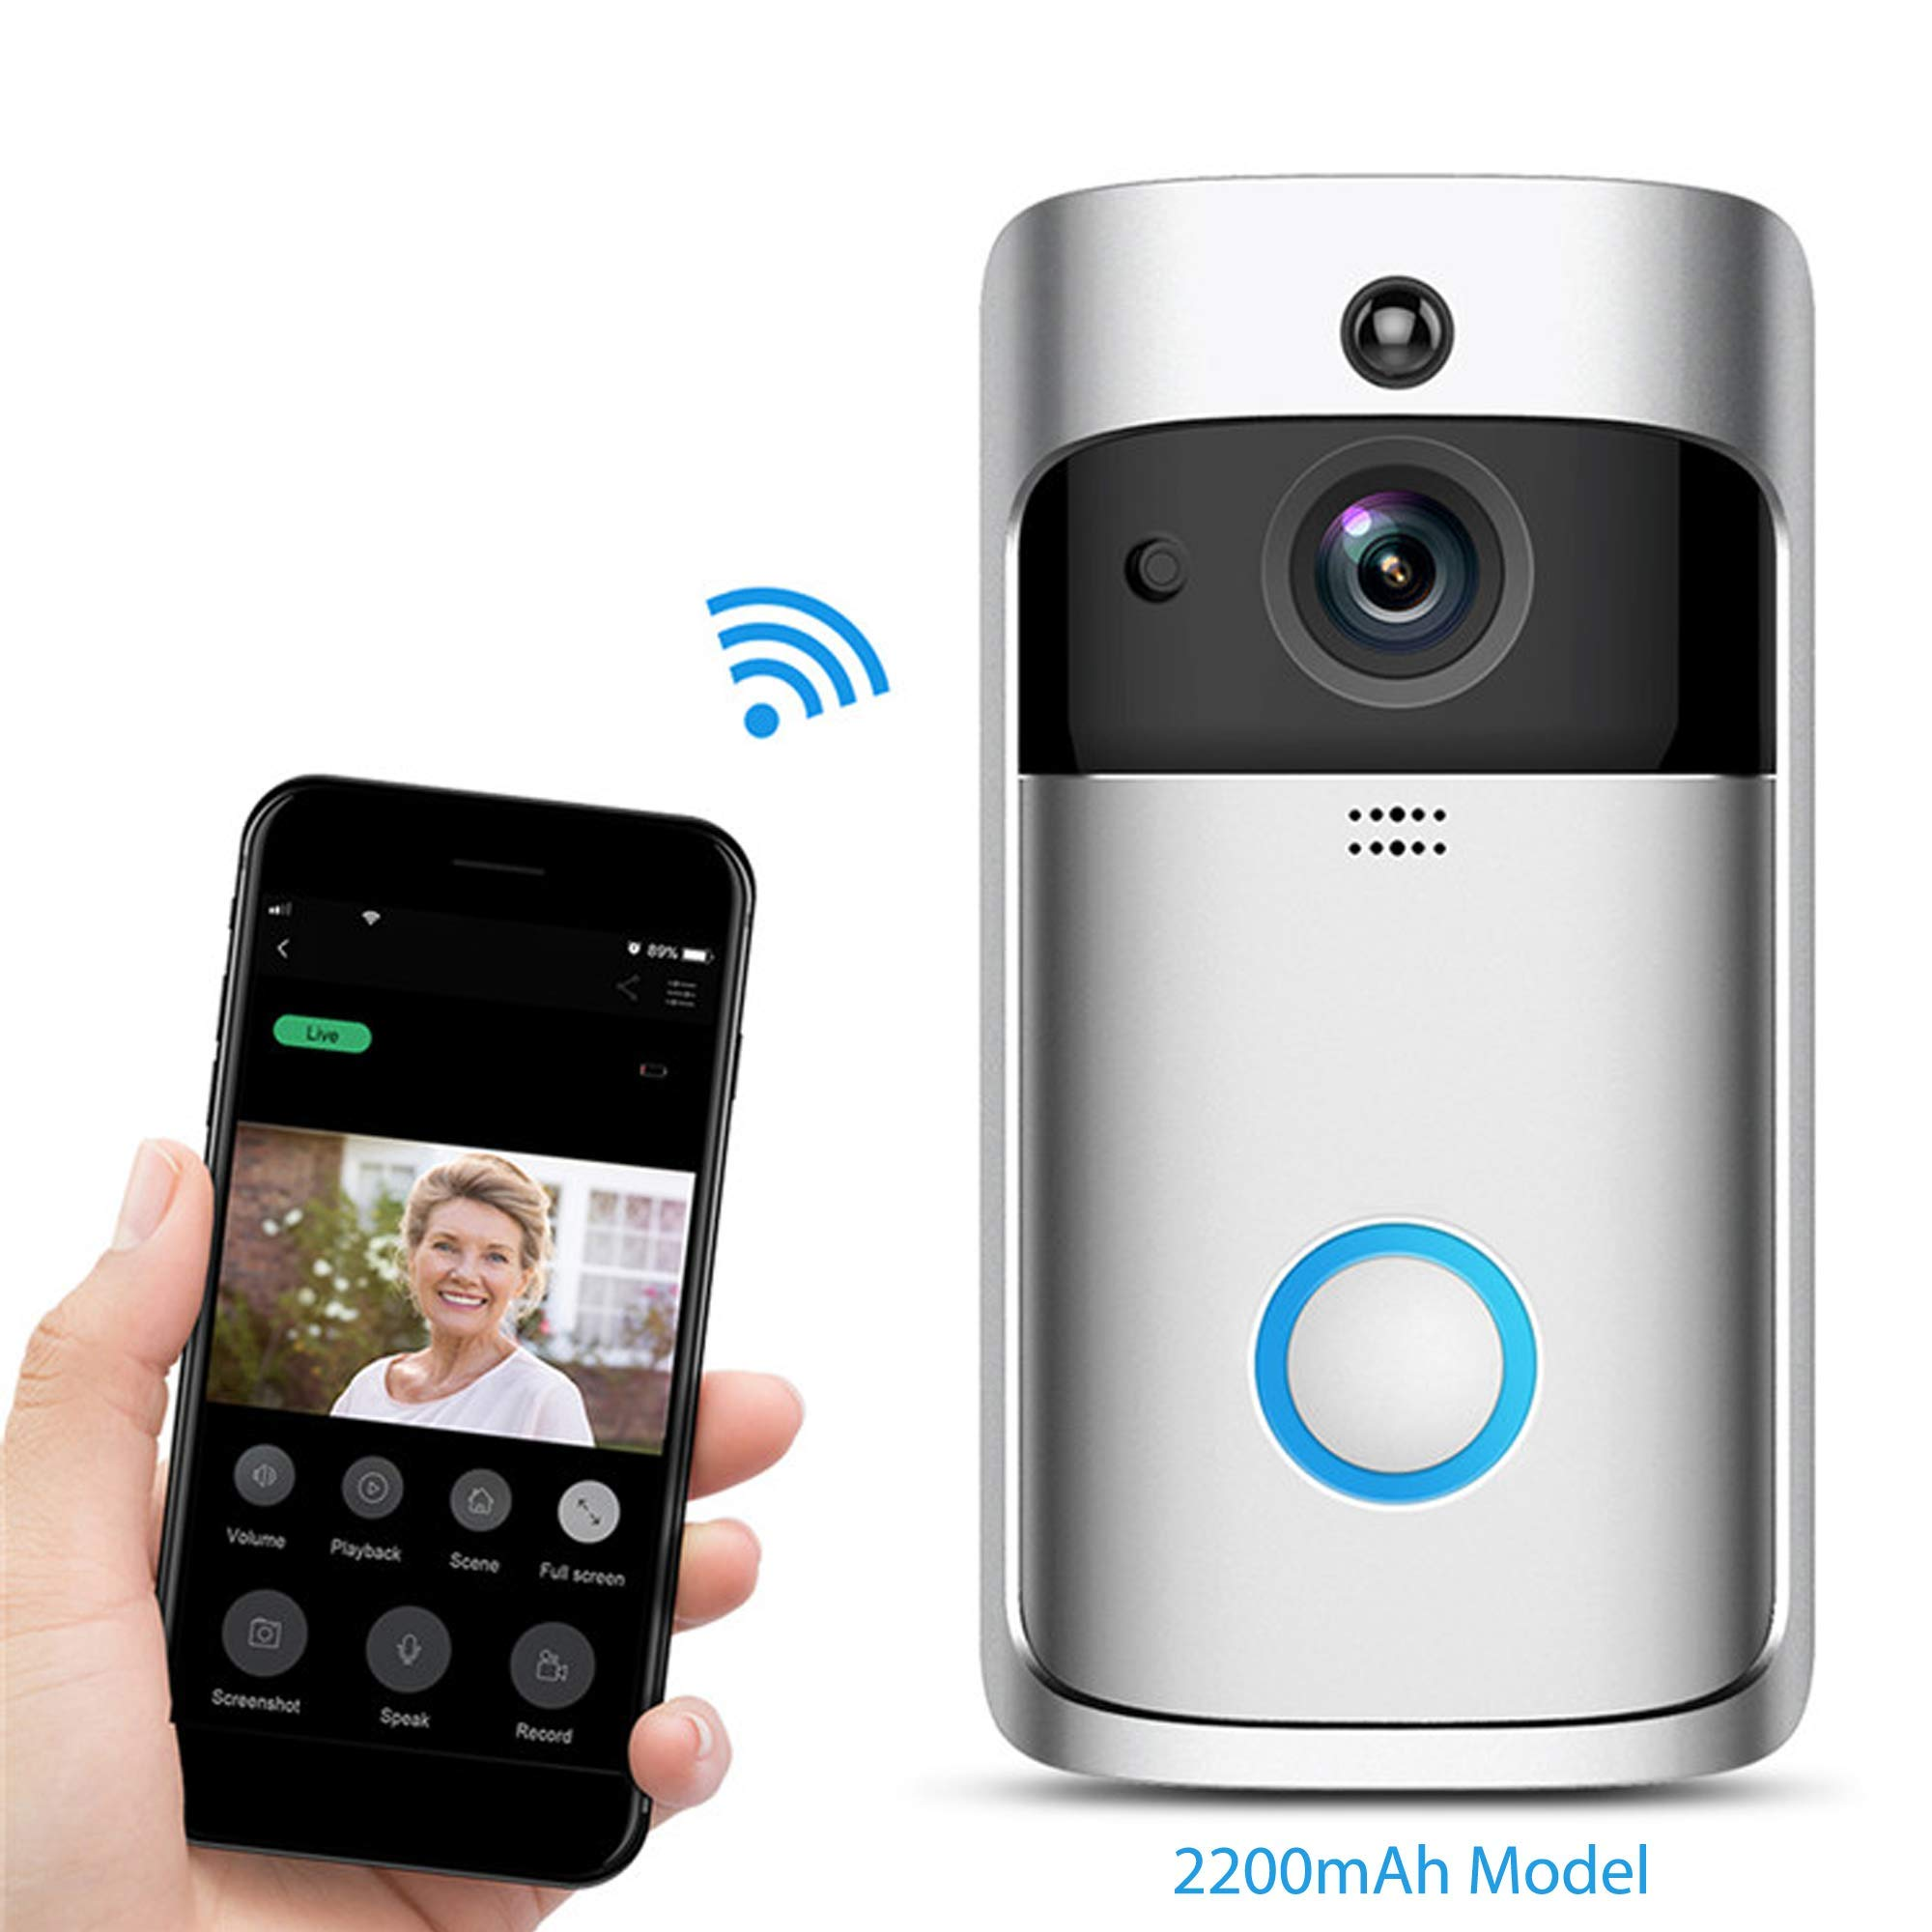 Zeus CCTV Video Doorbell Camera WiFi Battery Powered Home Security Surveillance Camera Mobile Smart Device (Low Power Consumption) by Zeus CCTV